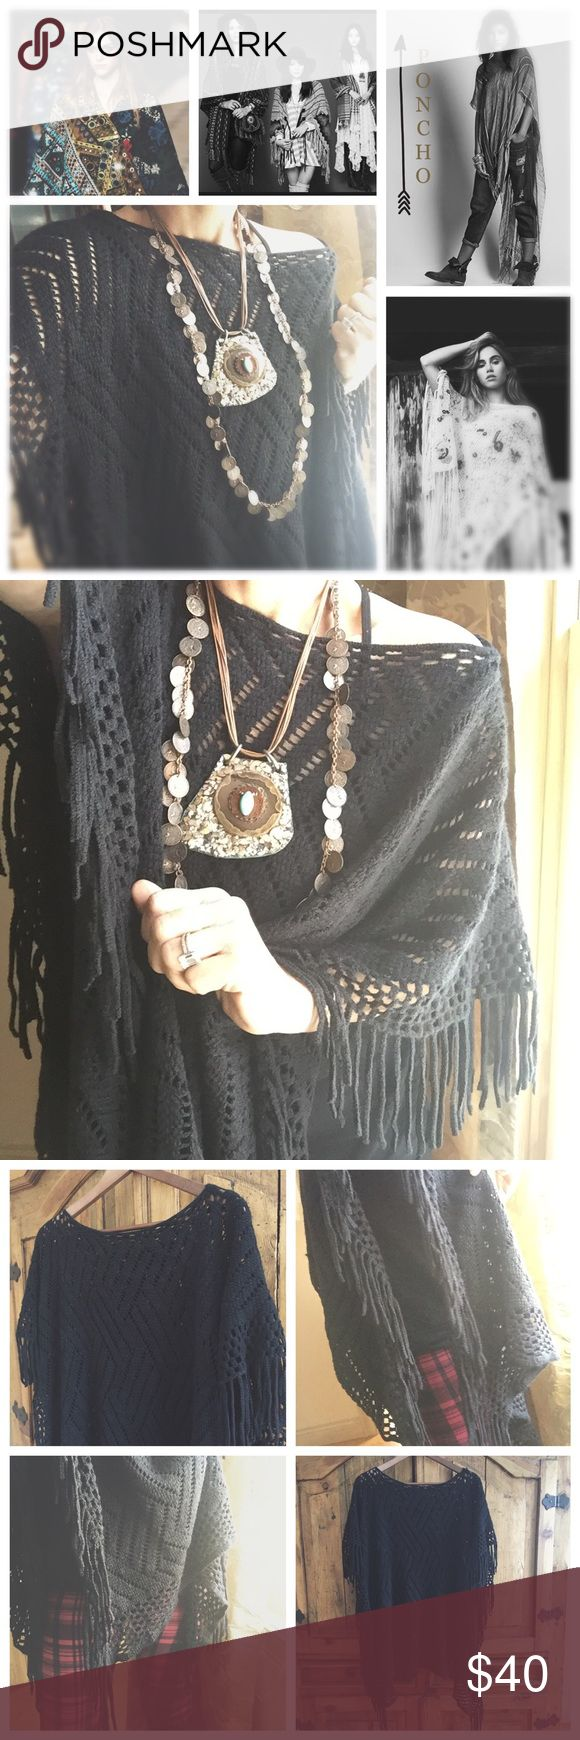 "Black Fringe Poncho What wardrobe doesn't need a black fringy Poncho!! Perfect for any season . Could also be worn as a big chunk scarf. Would look great over a Silky spaghetti strap dress for an evening wedding . Add some knee high boots and you will stand out in the crowd!! My motto is ""Dare to be different"" I'm wearing with my  John Varvatos converse slip ons. Tags have been removed, so sold as is and price reflects this. NWOT boutique Sweaters"